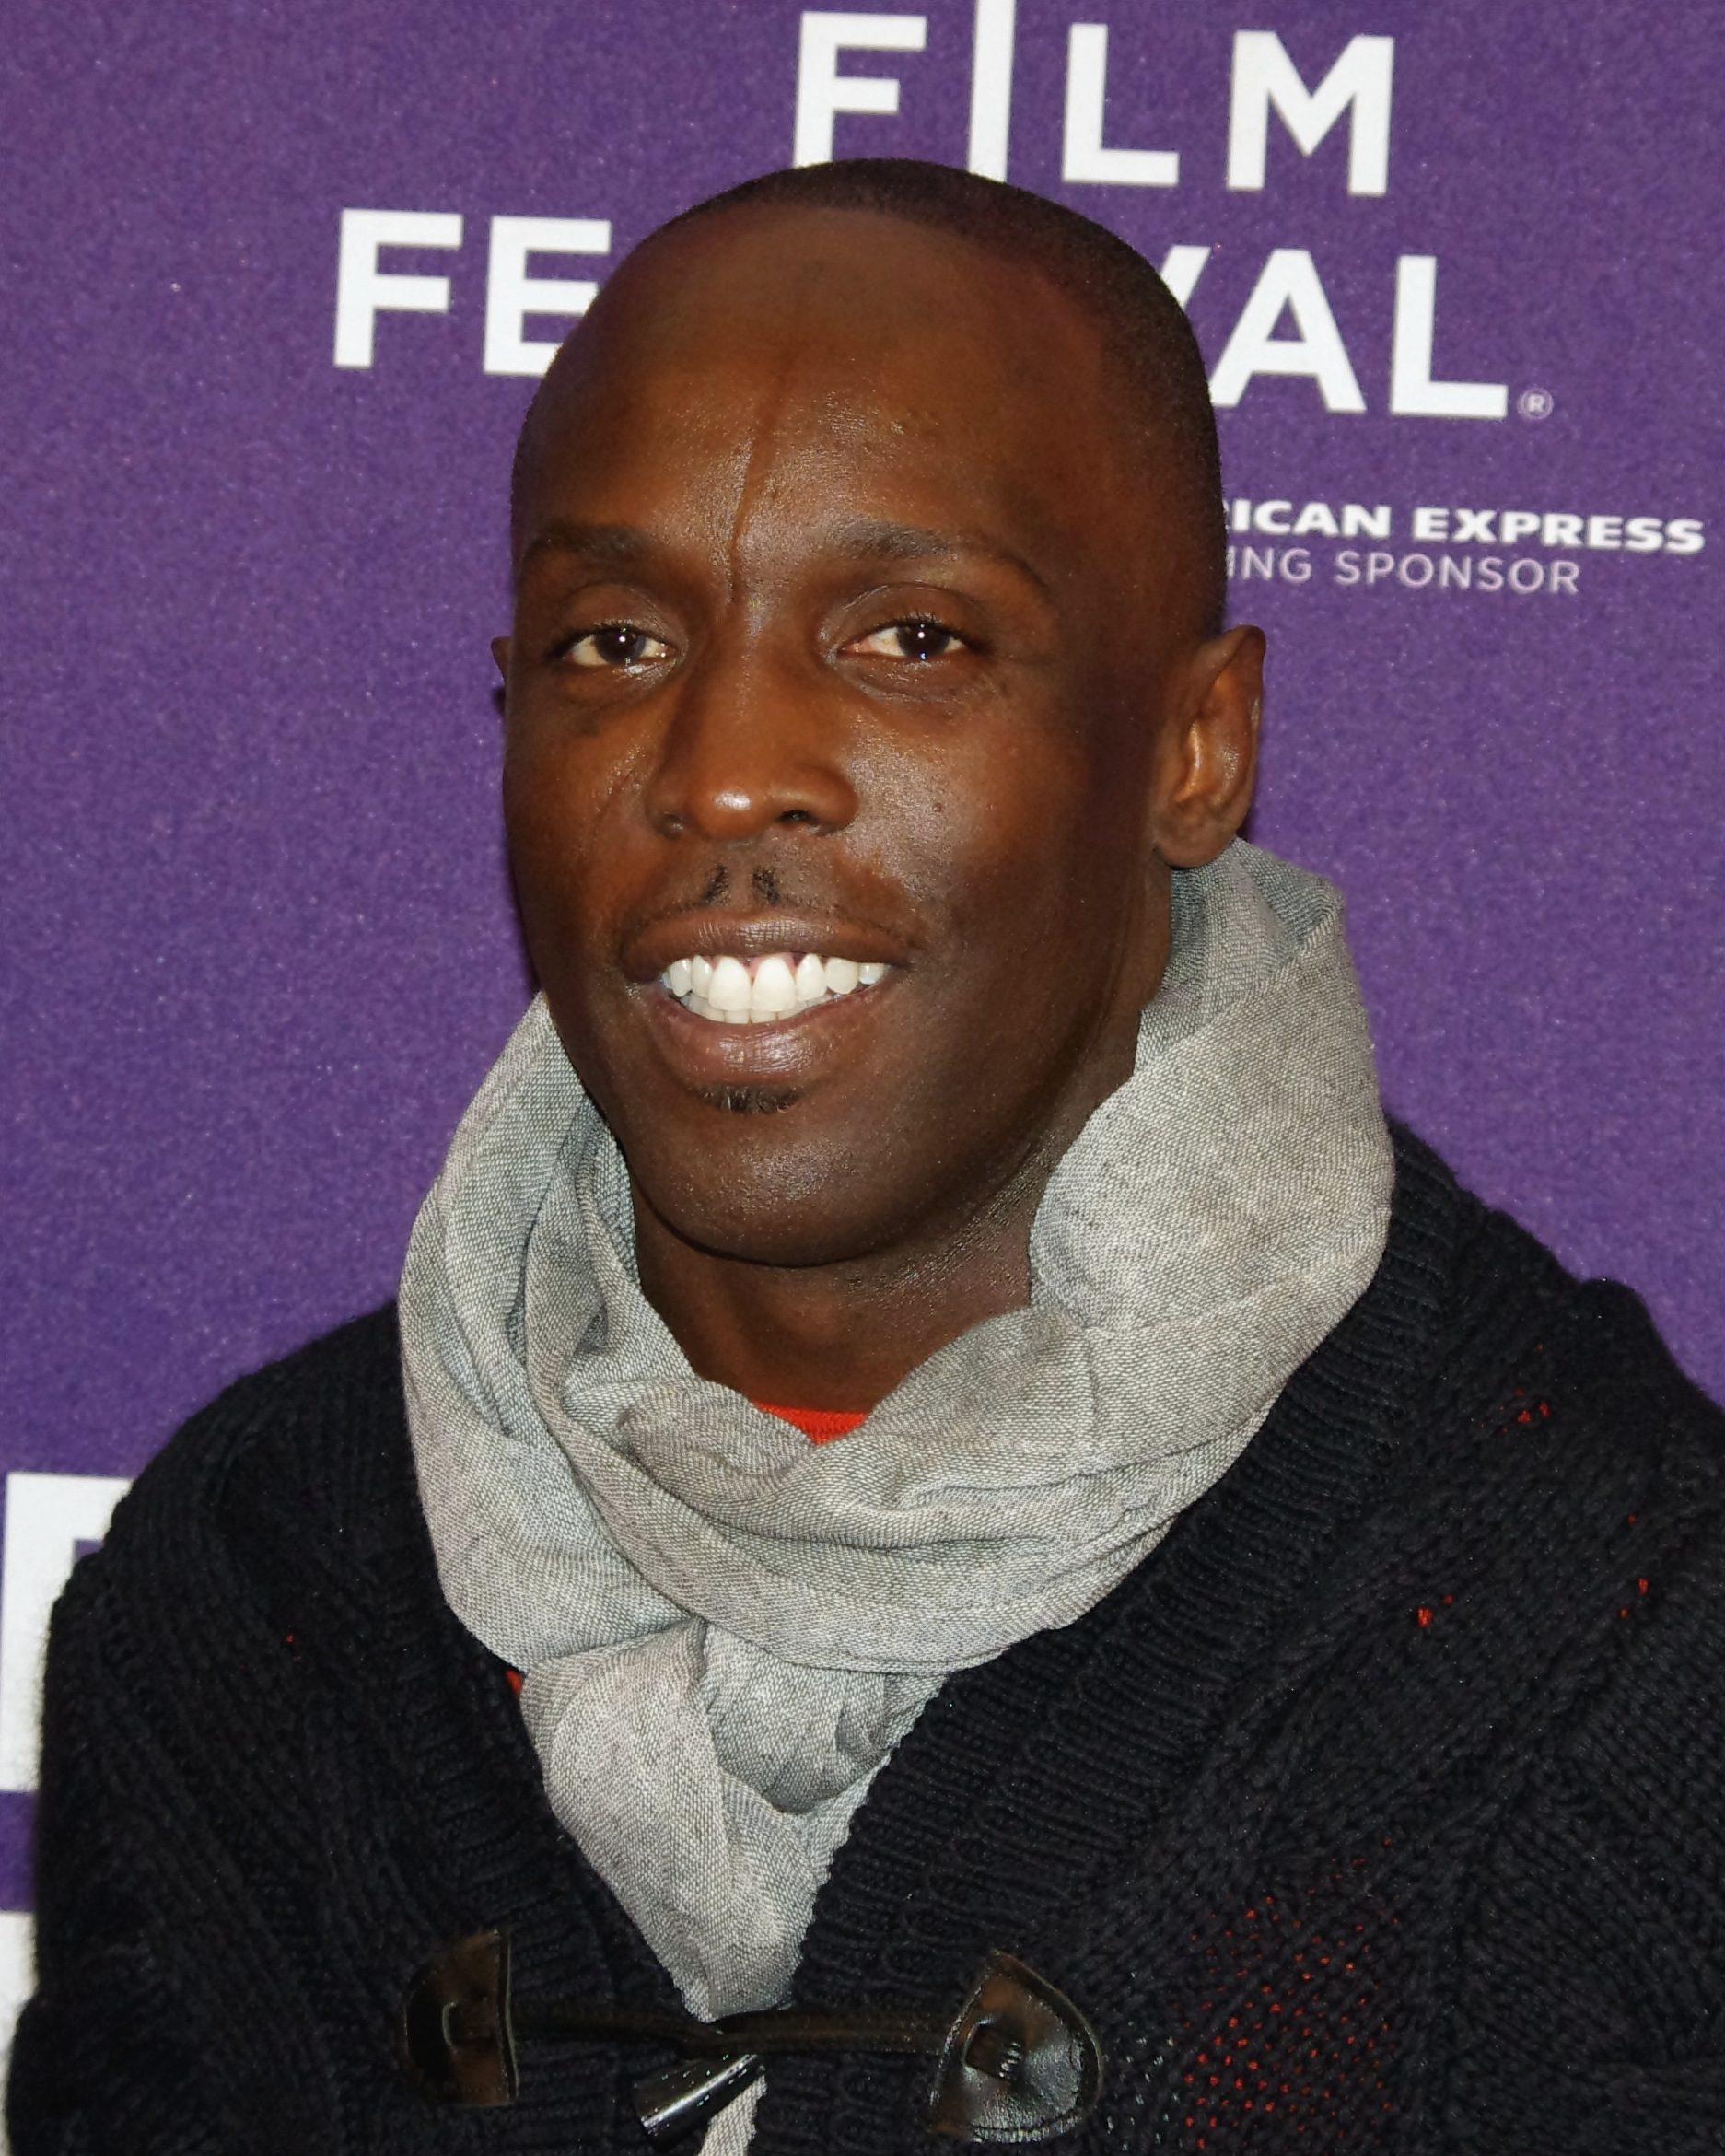 The 51-year old son of father (?) and mother(?) Michael Kenneth Williams in 2018 photo. Michael Kenneth Williams earned a  million dollar salary - leaving the net worth at 1.5 million in 2018